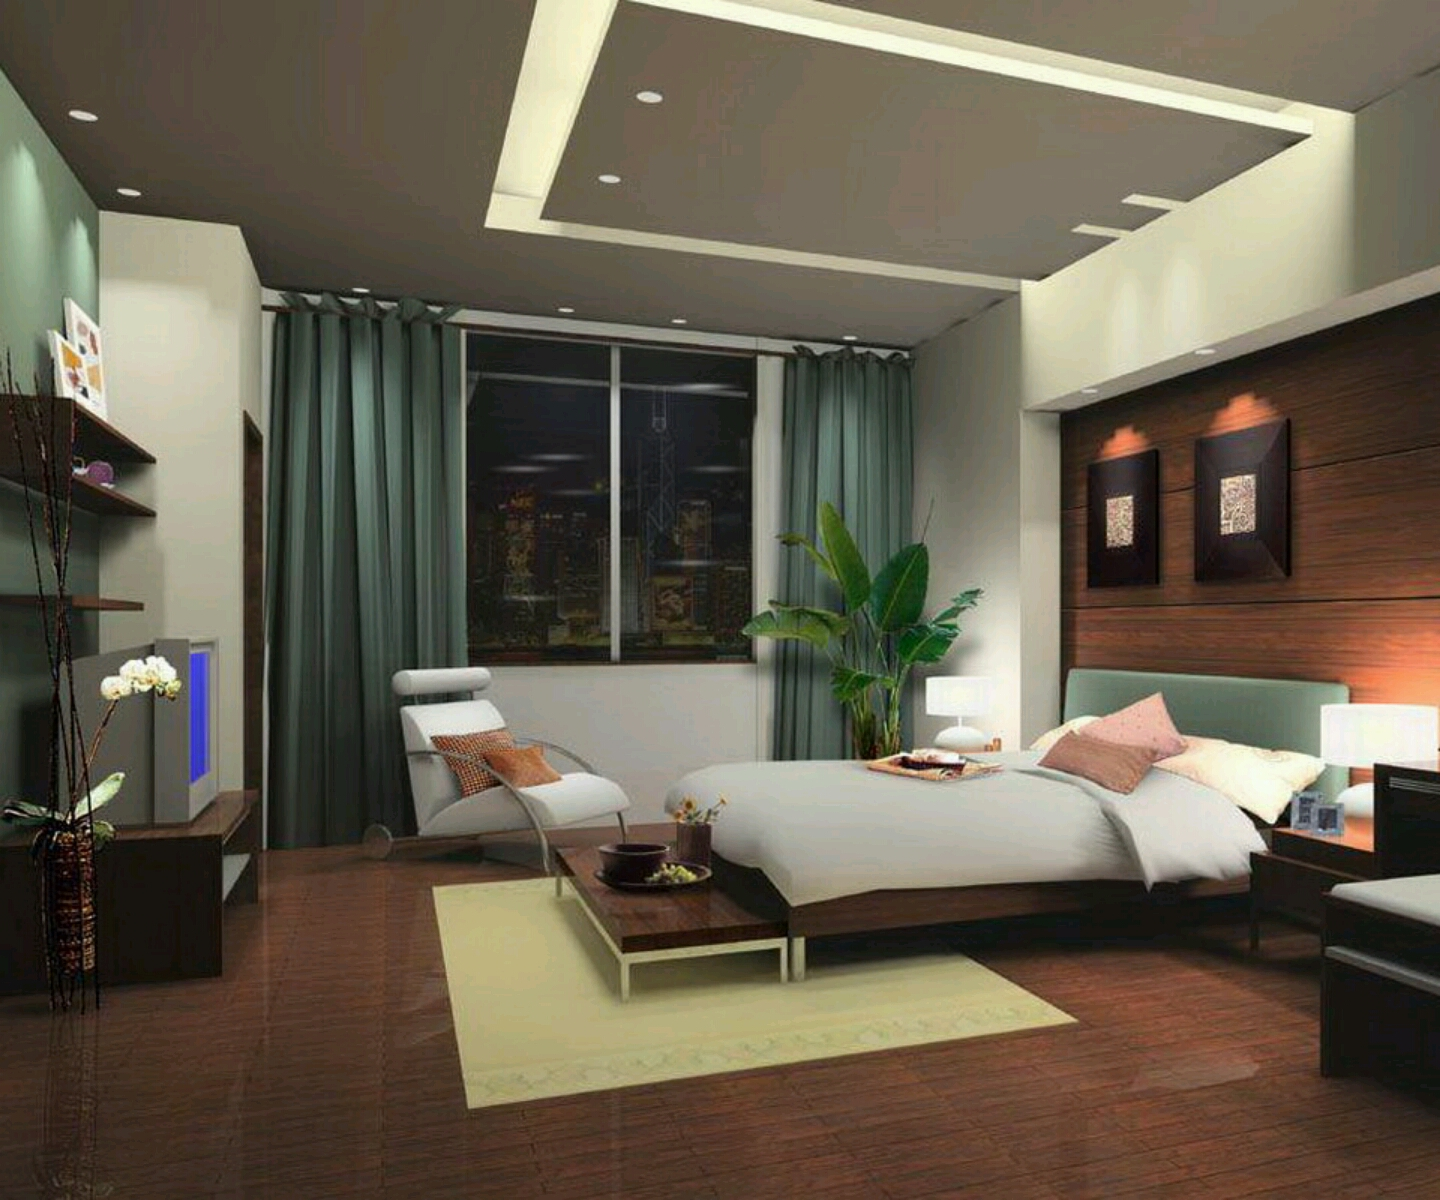 New home designs latest modern bedrooms designs best ideas for Bedroom designs ideas